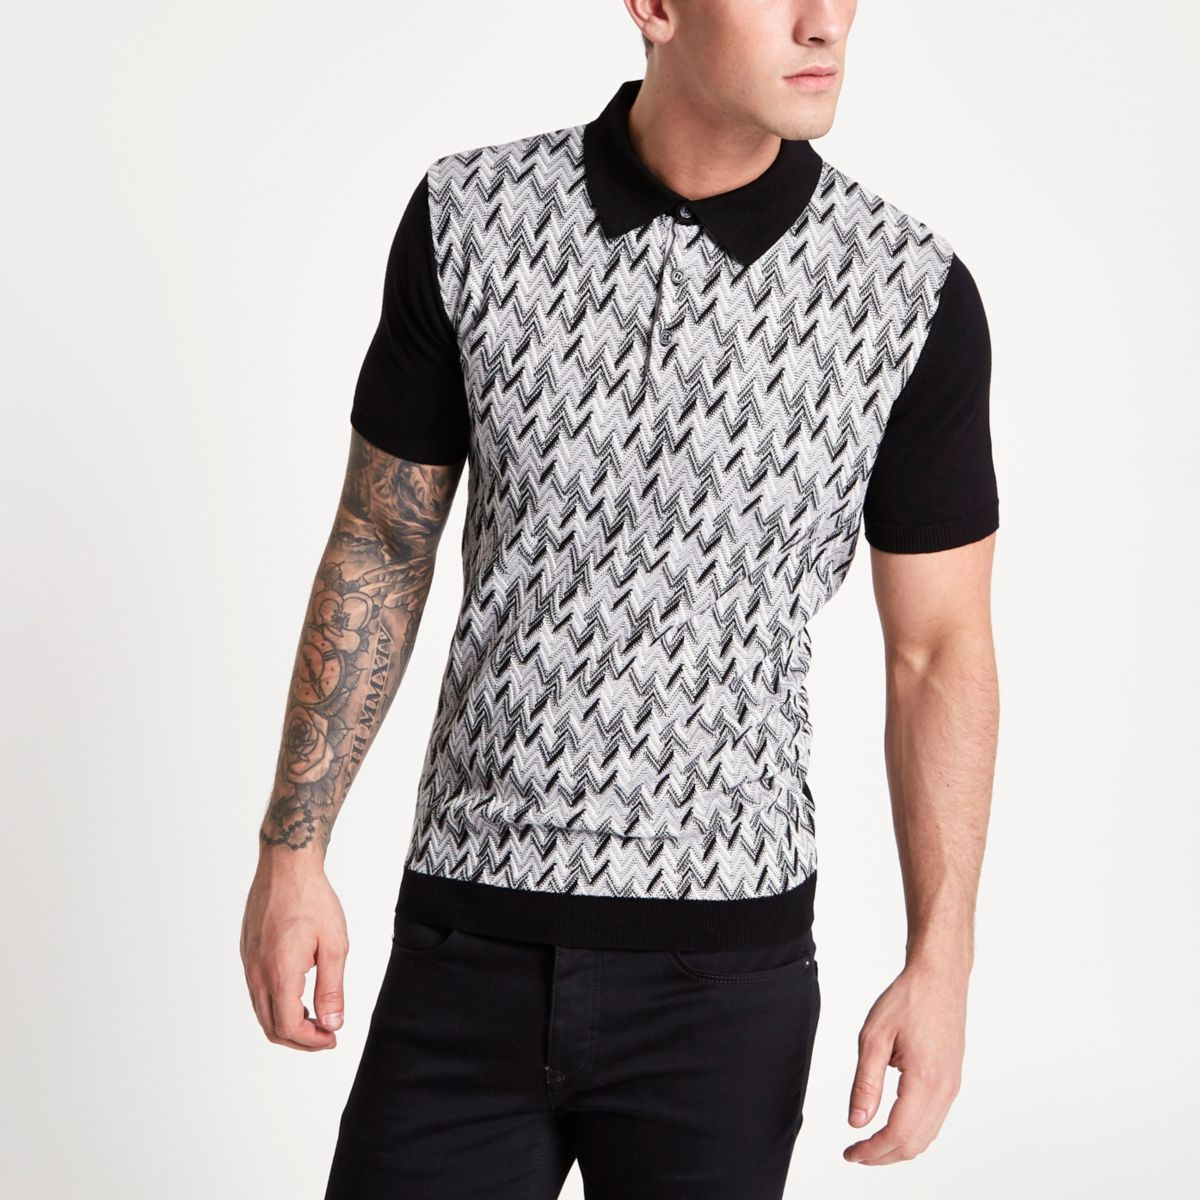 Black jacquard knit slim fit polo shirt